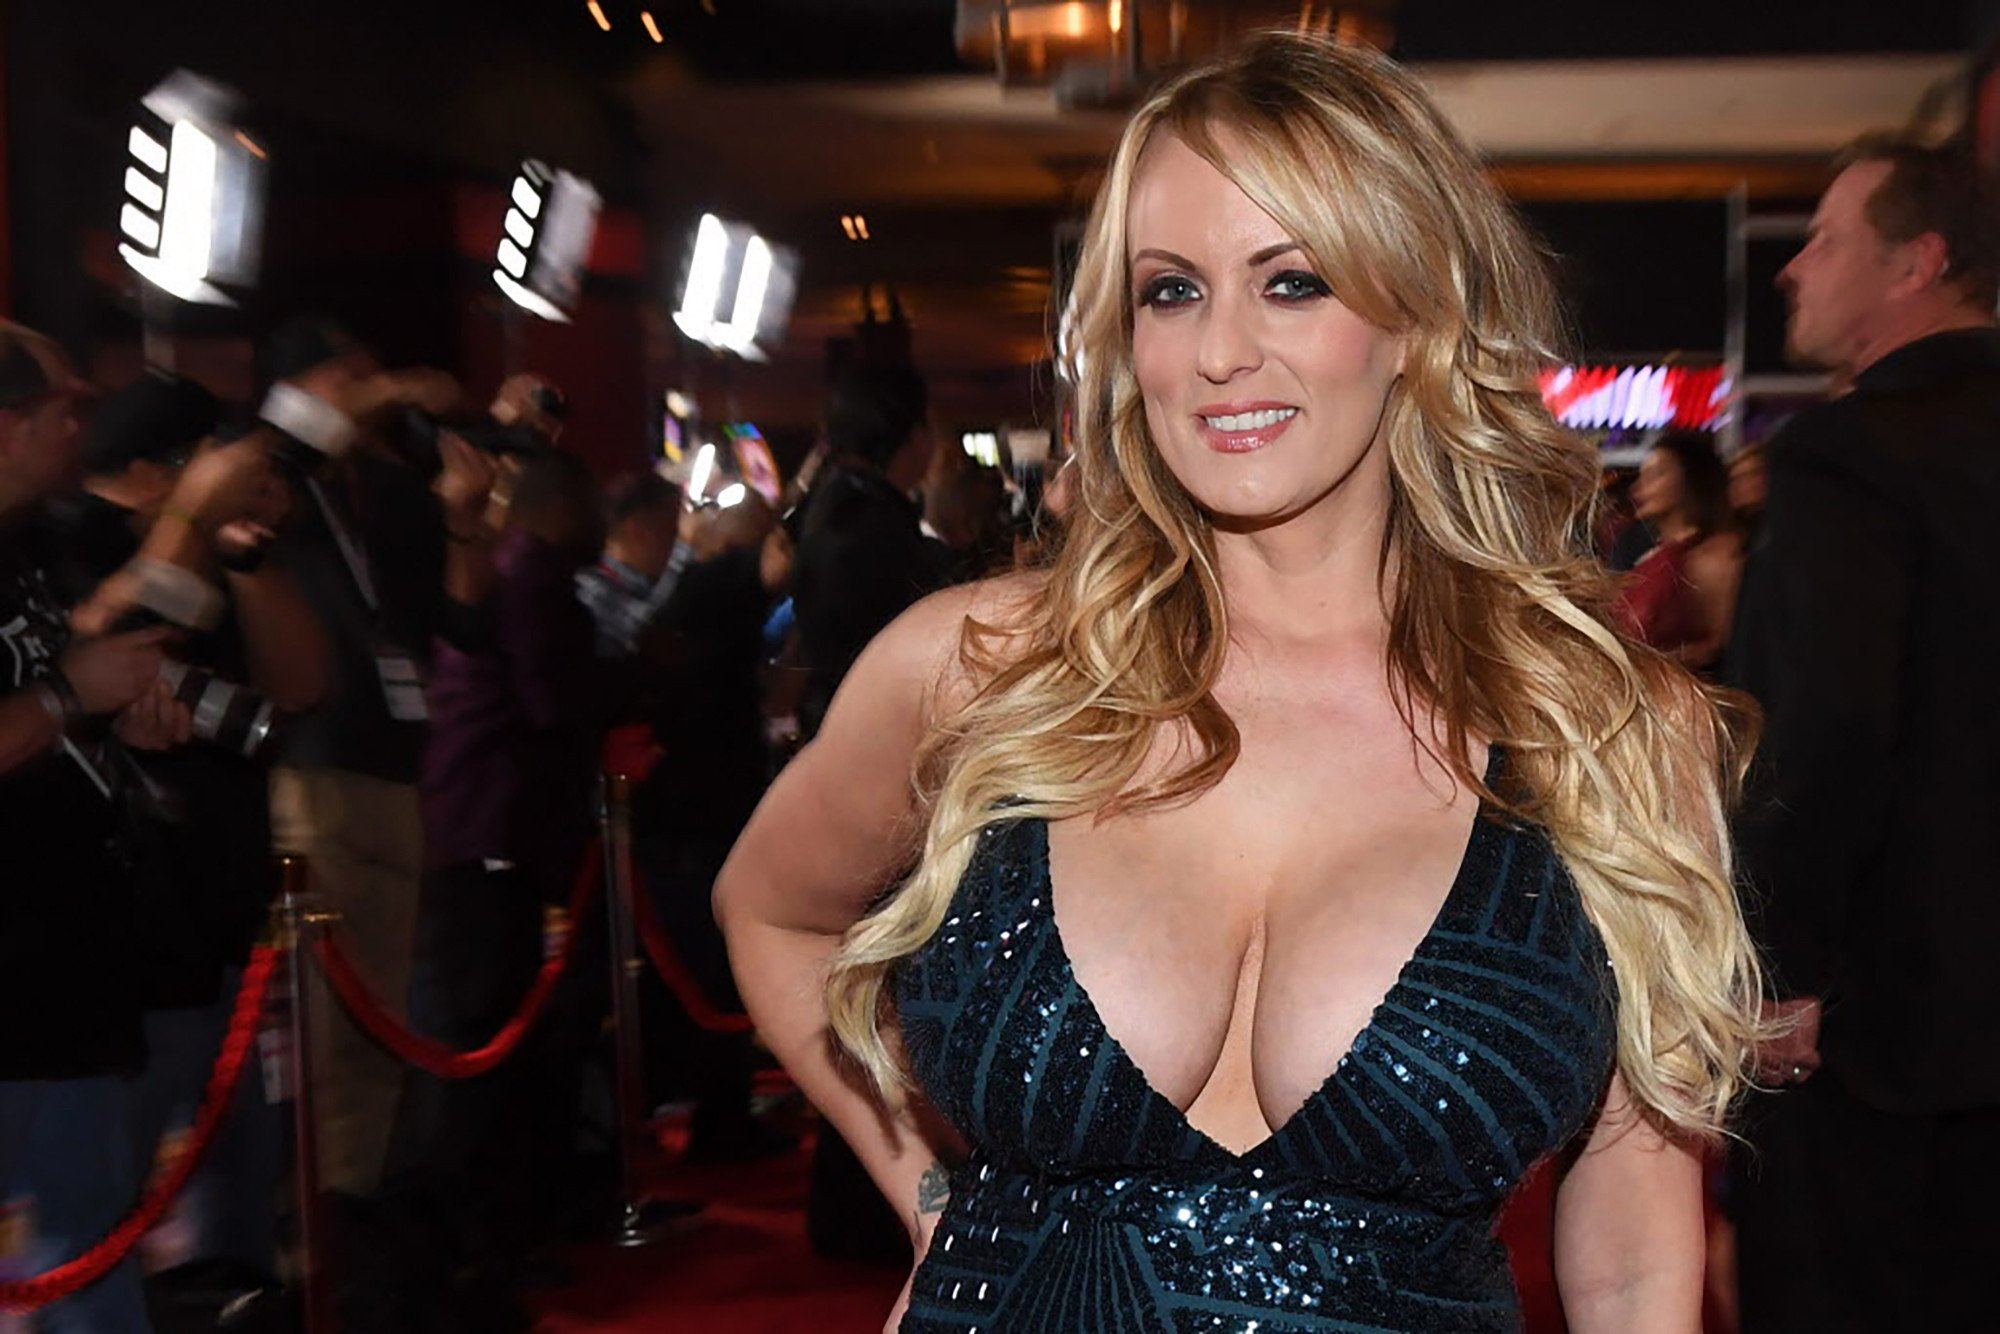 Porn star claims she's free to talk after Trump lawyer violated non-disclosure deal